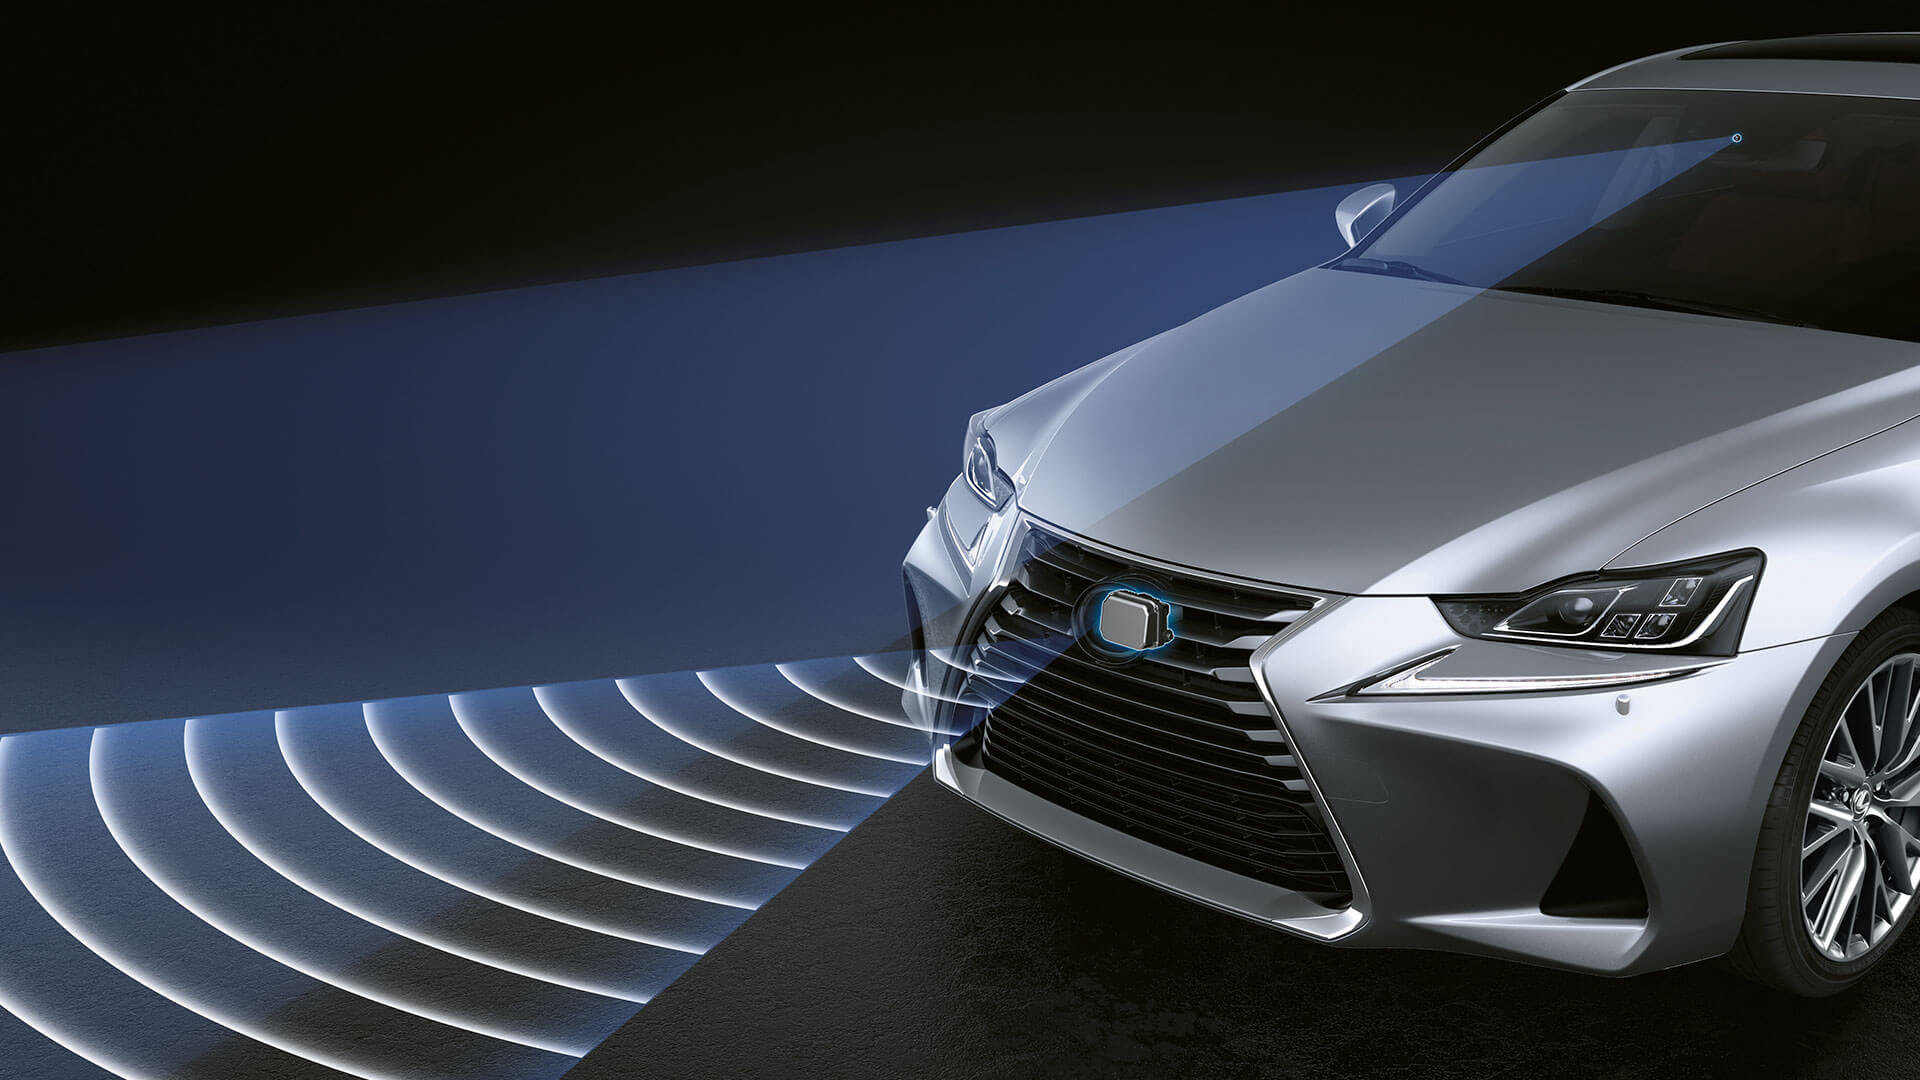 2017 lexus is 300h features pedestrian detection